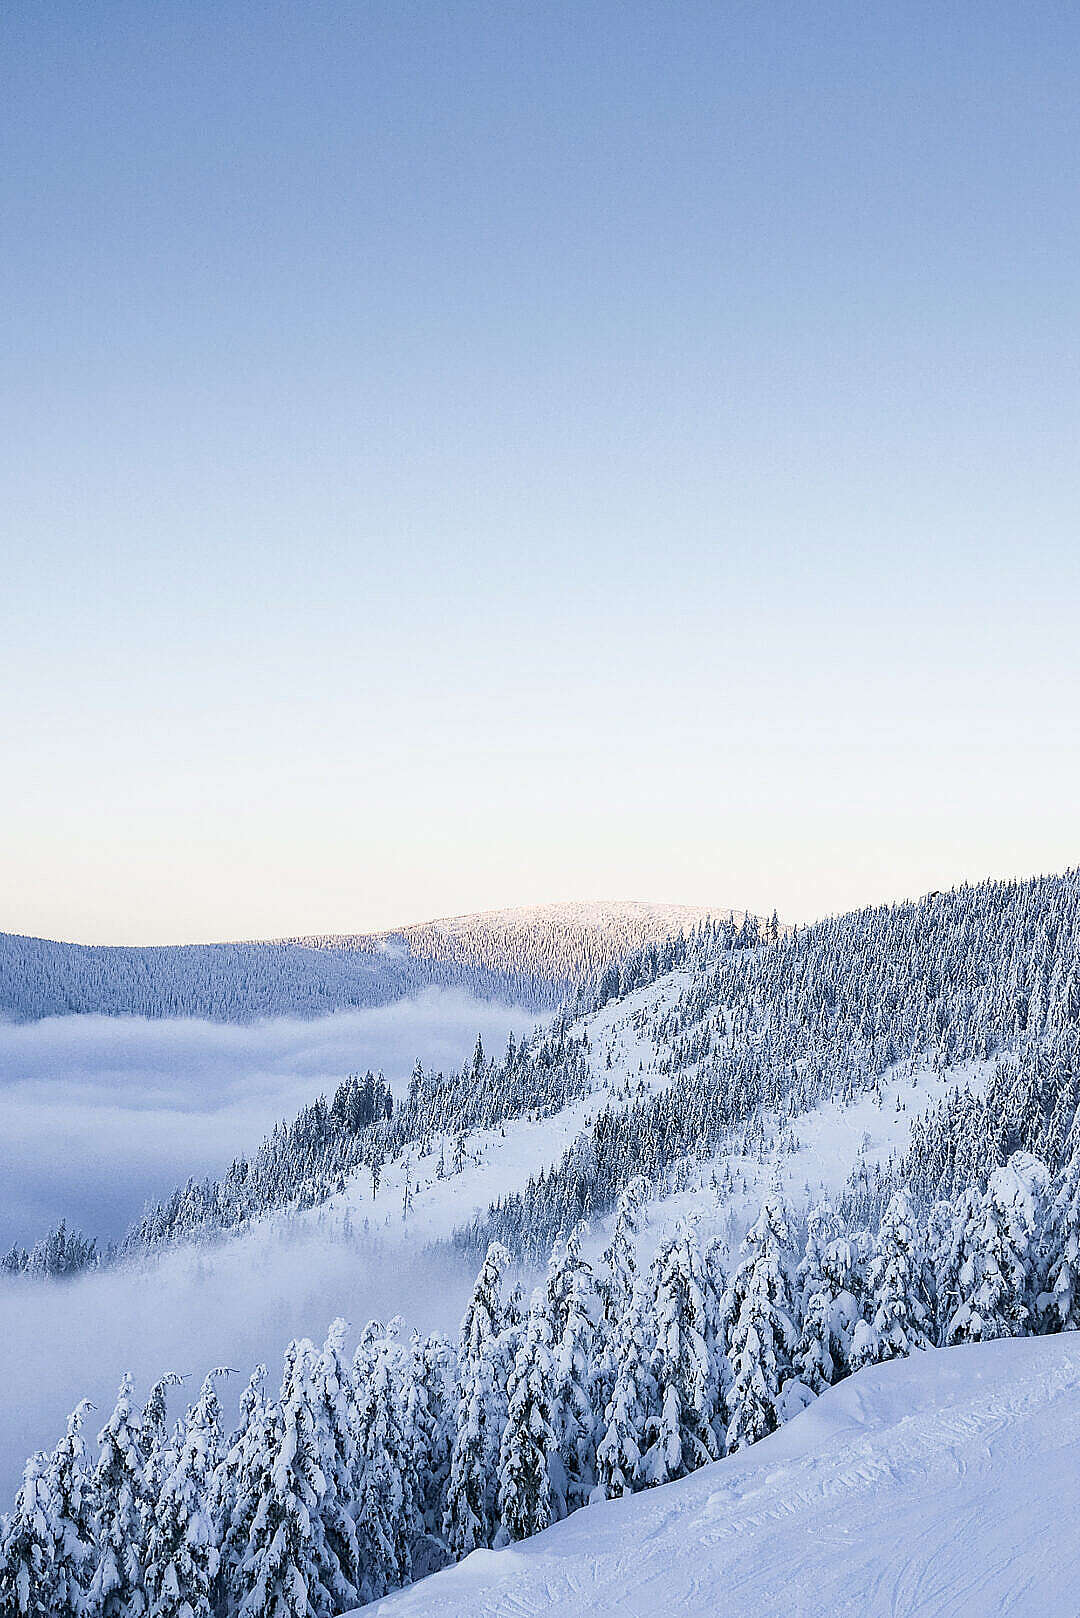 Download Snowy Hills with Cloudless Sky FREE Stock Photo